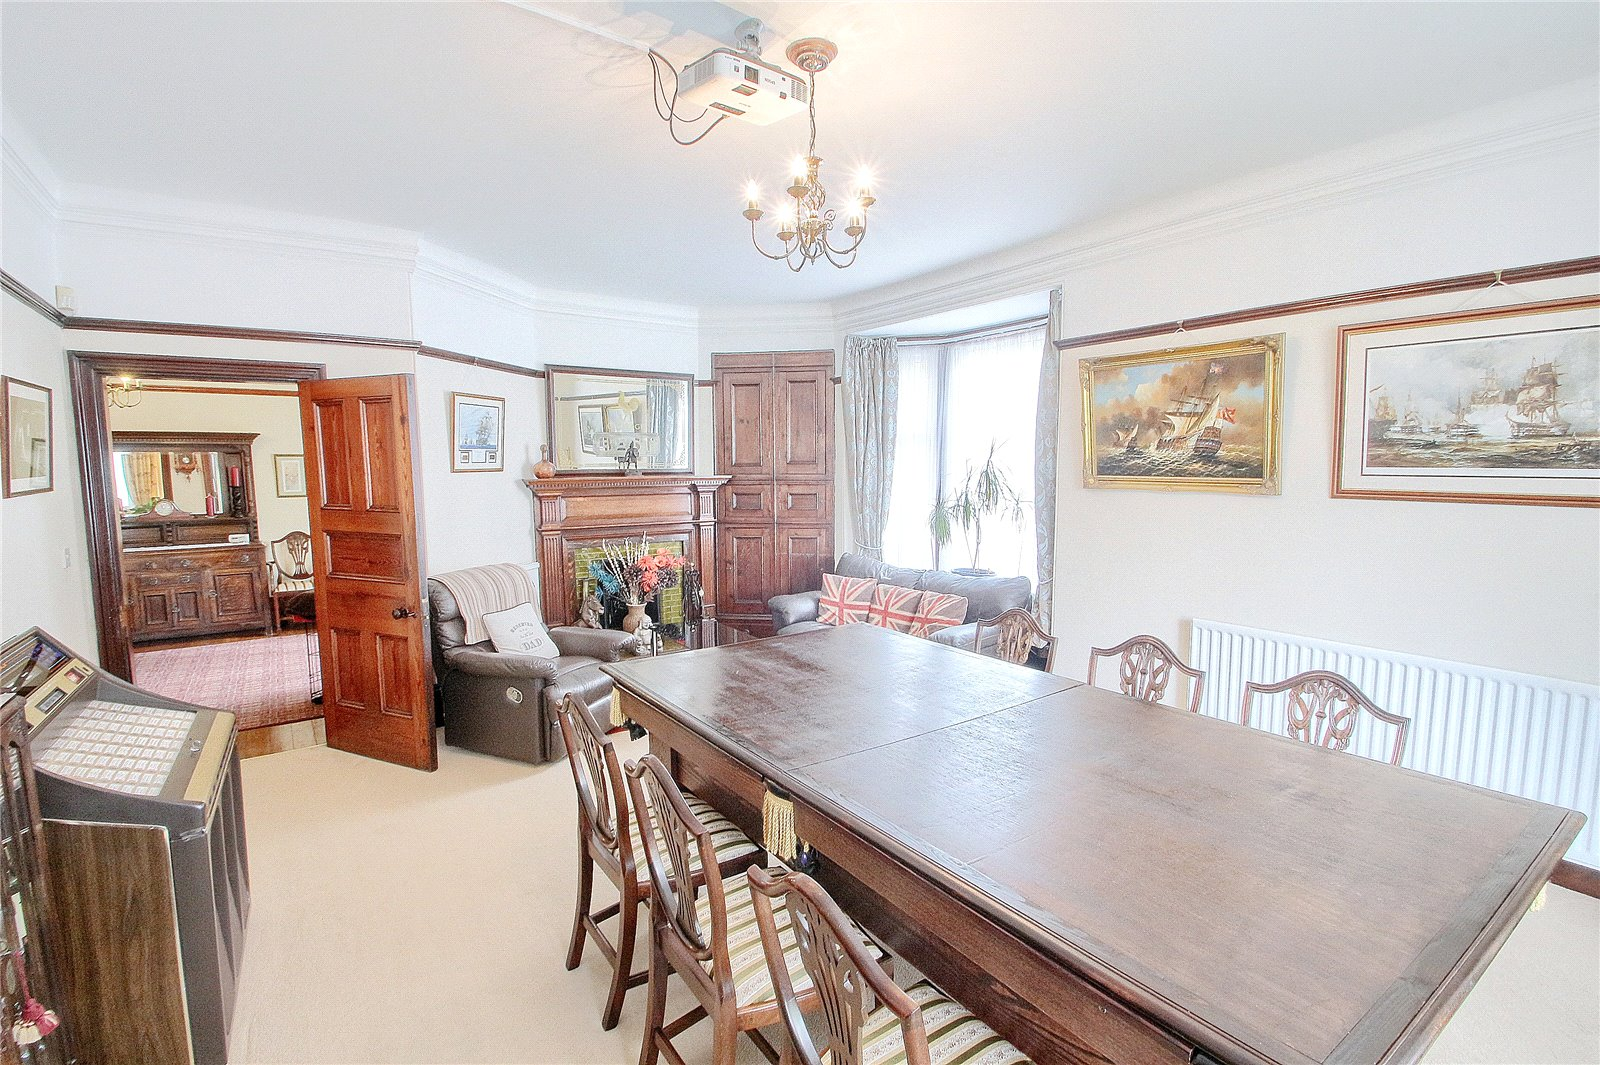 7 bed house for sale in Richmond Road, Stockton-on-Tees  - Property Image 4